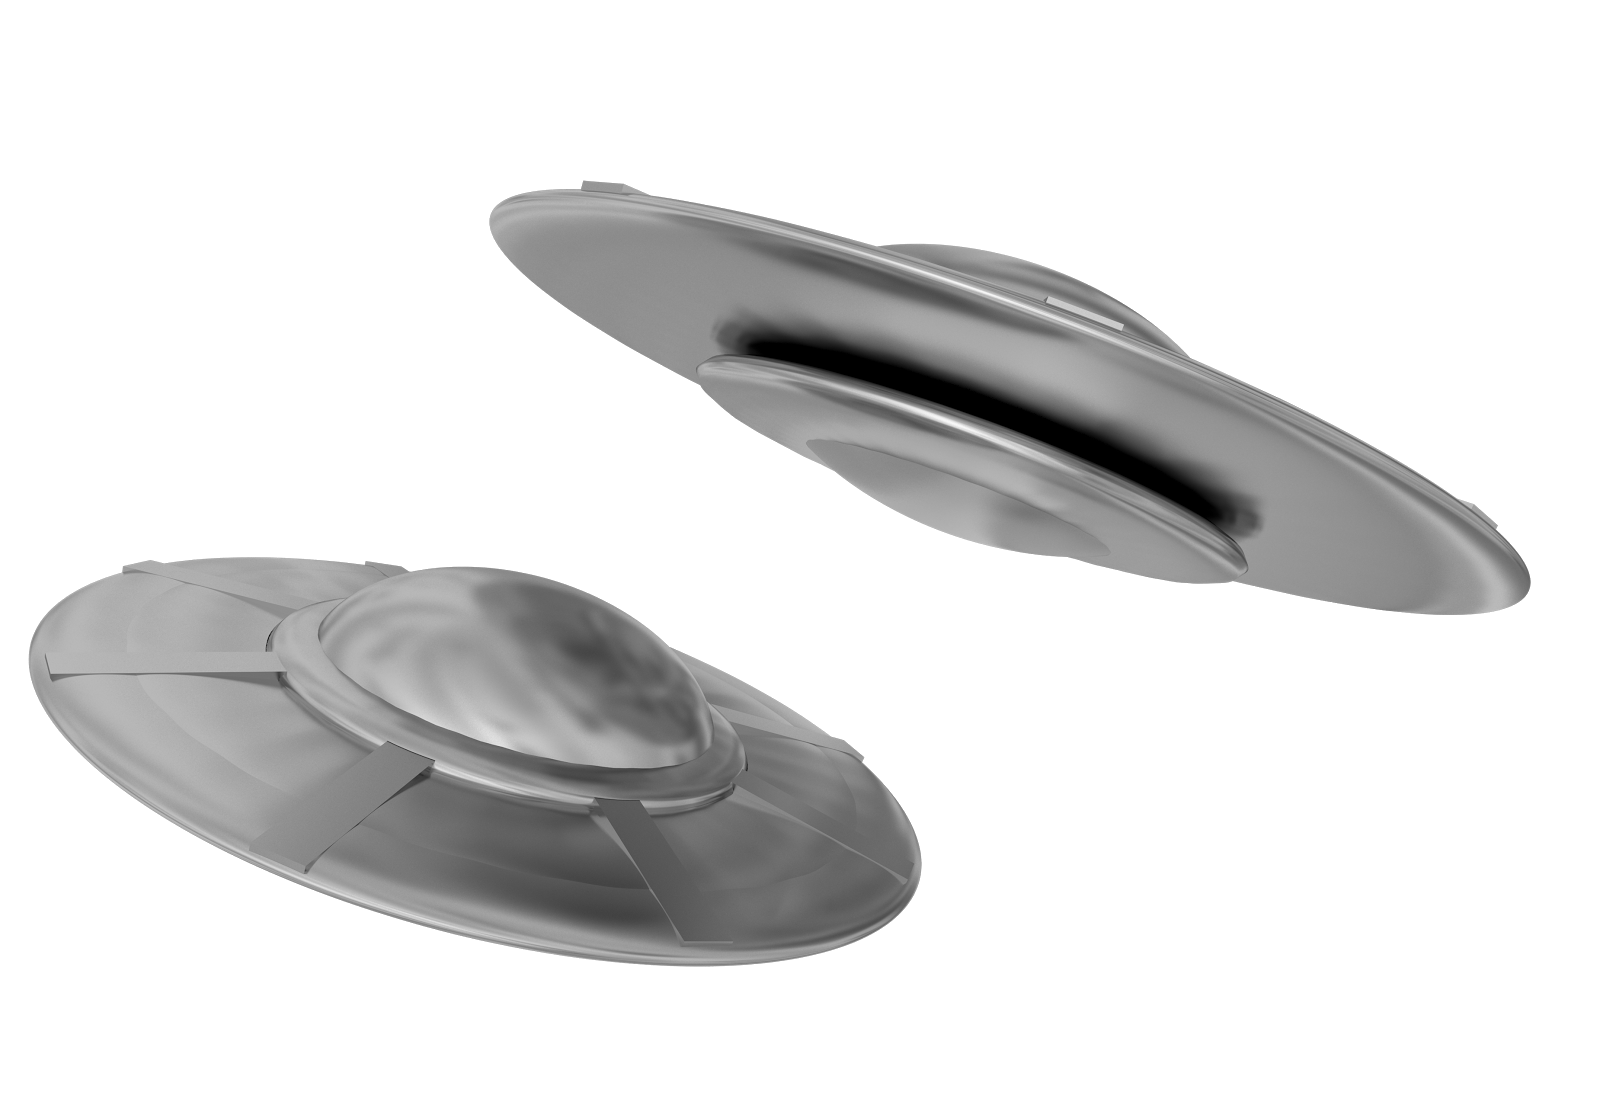 png royalty free Ufo PNG Image